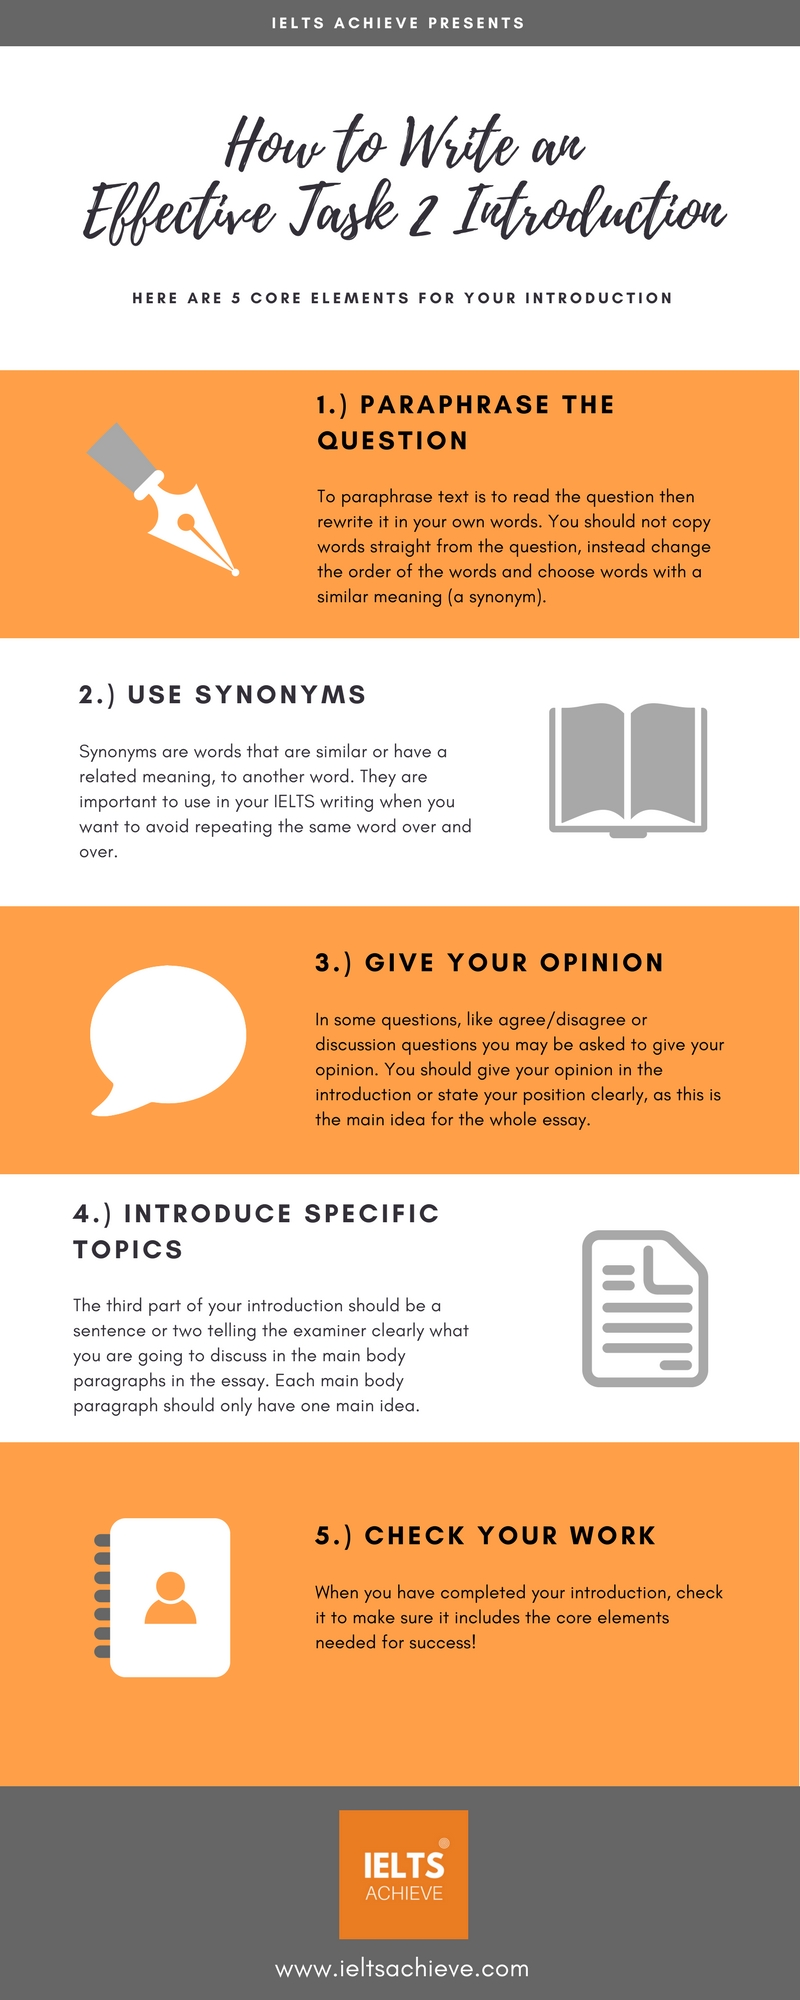 Topics For High School Essays The Five Steps To A Successful Ielts Writing Task  Essay Introduction Essay About Healthy Diet also Apa Format For Essay Paper How To Write An Introduction  Ielts Achieve High School Essay Topics